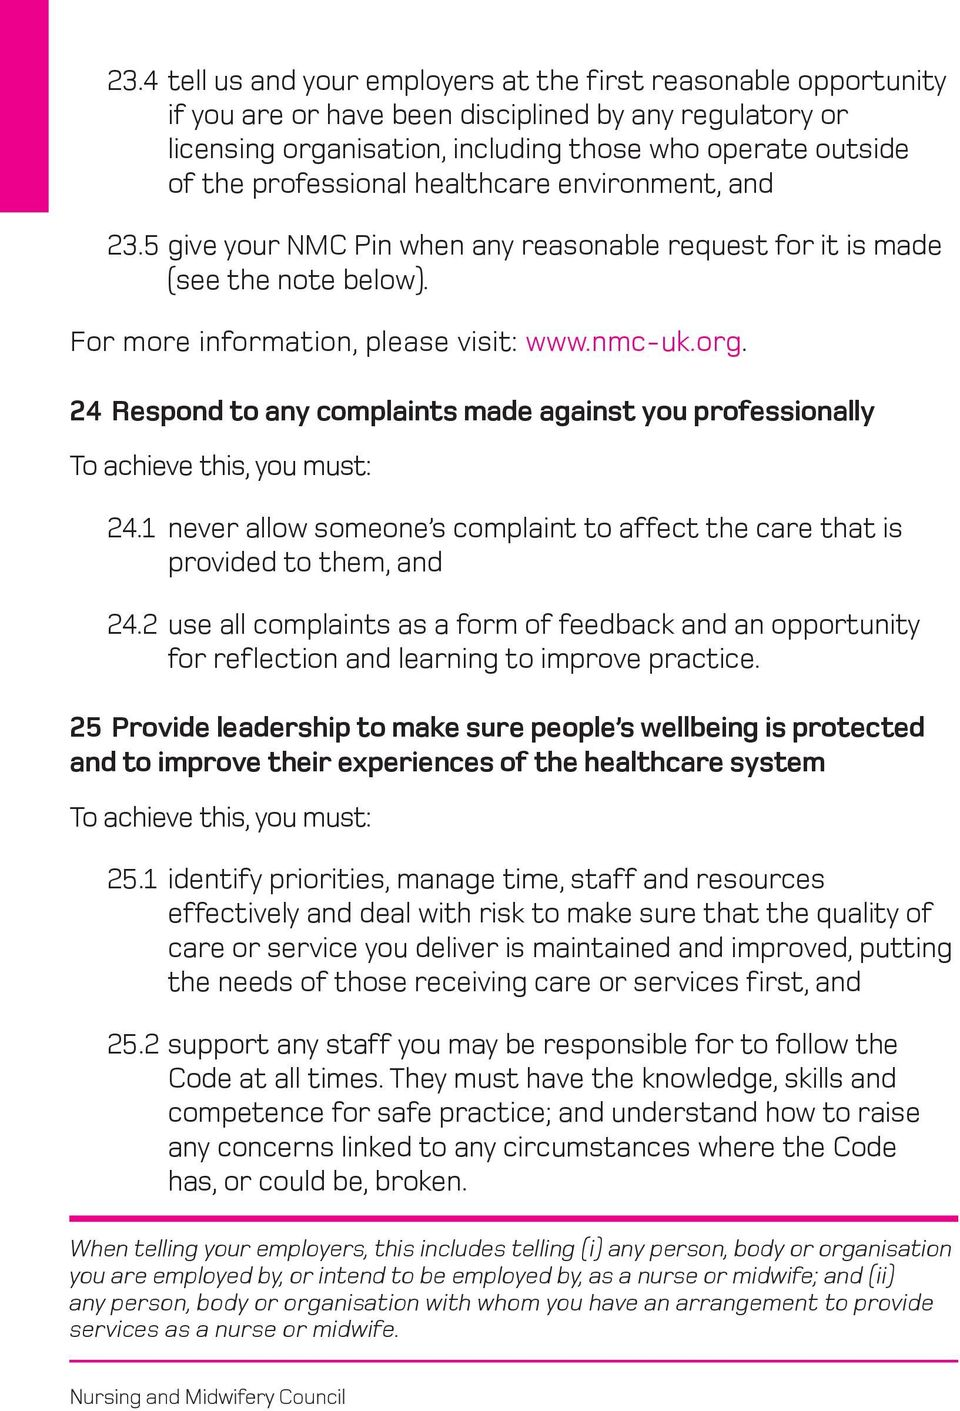 24 Respond to any complaints made against you professionally 24.1 never allow someone s complaint to affect the care that is provided to them, and 24.